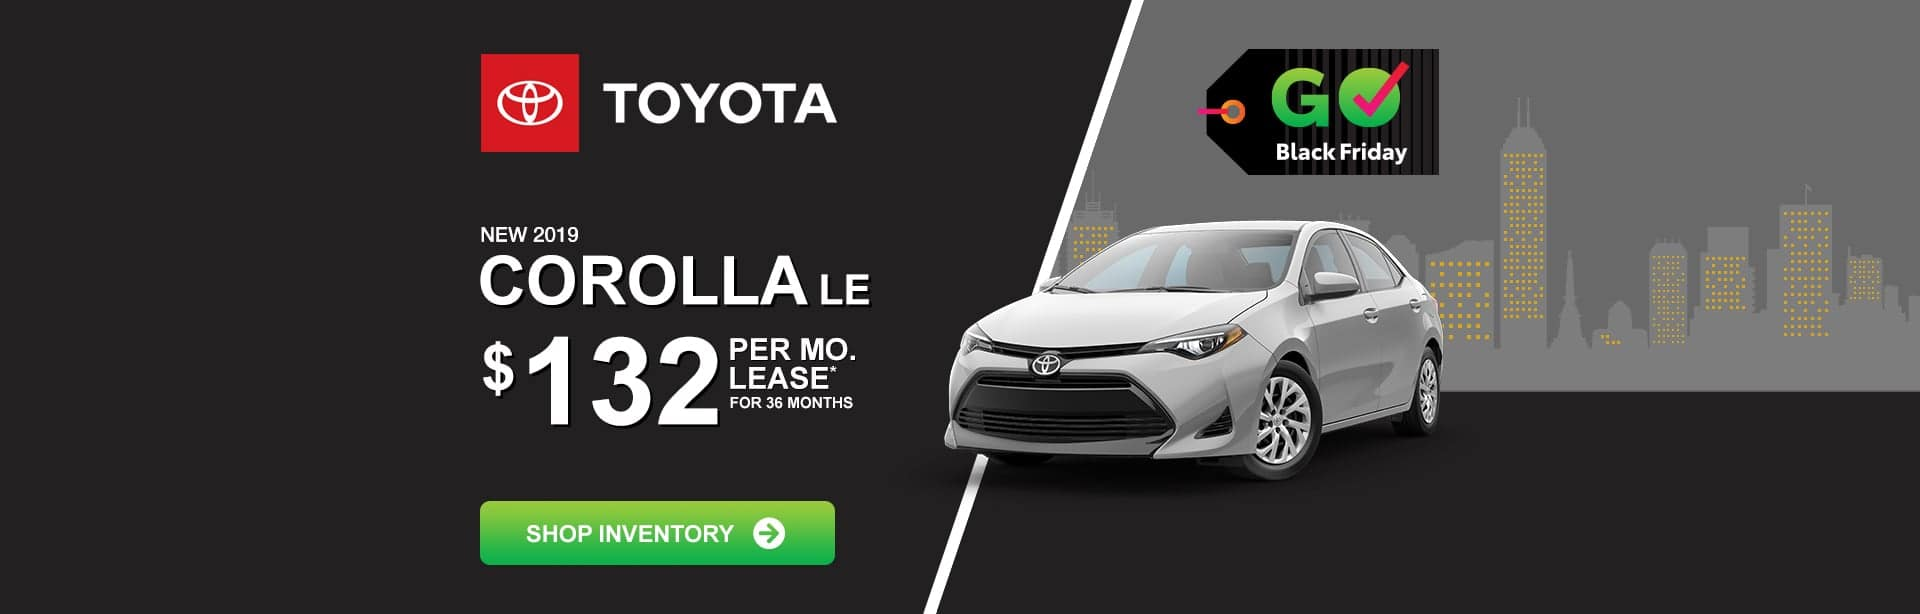 Toyota Corolla Black Friday Lease Special near Greenwood, Indiana